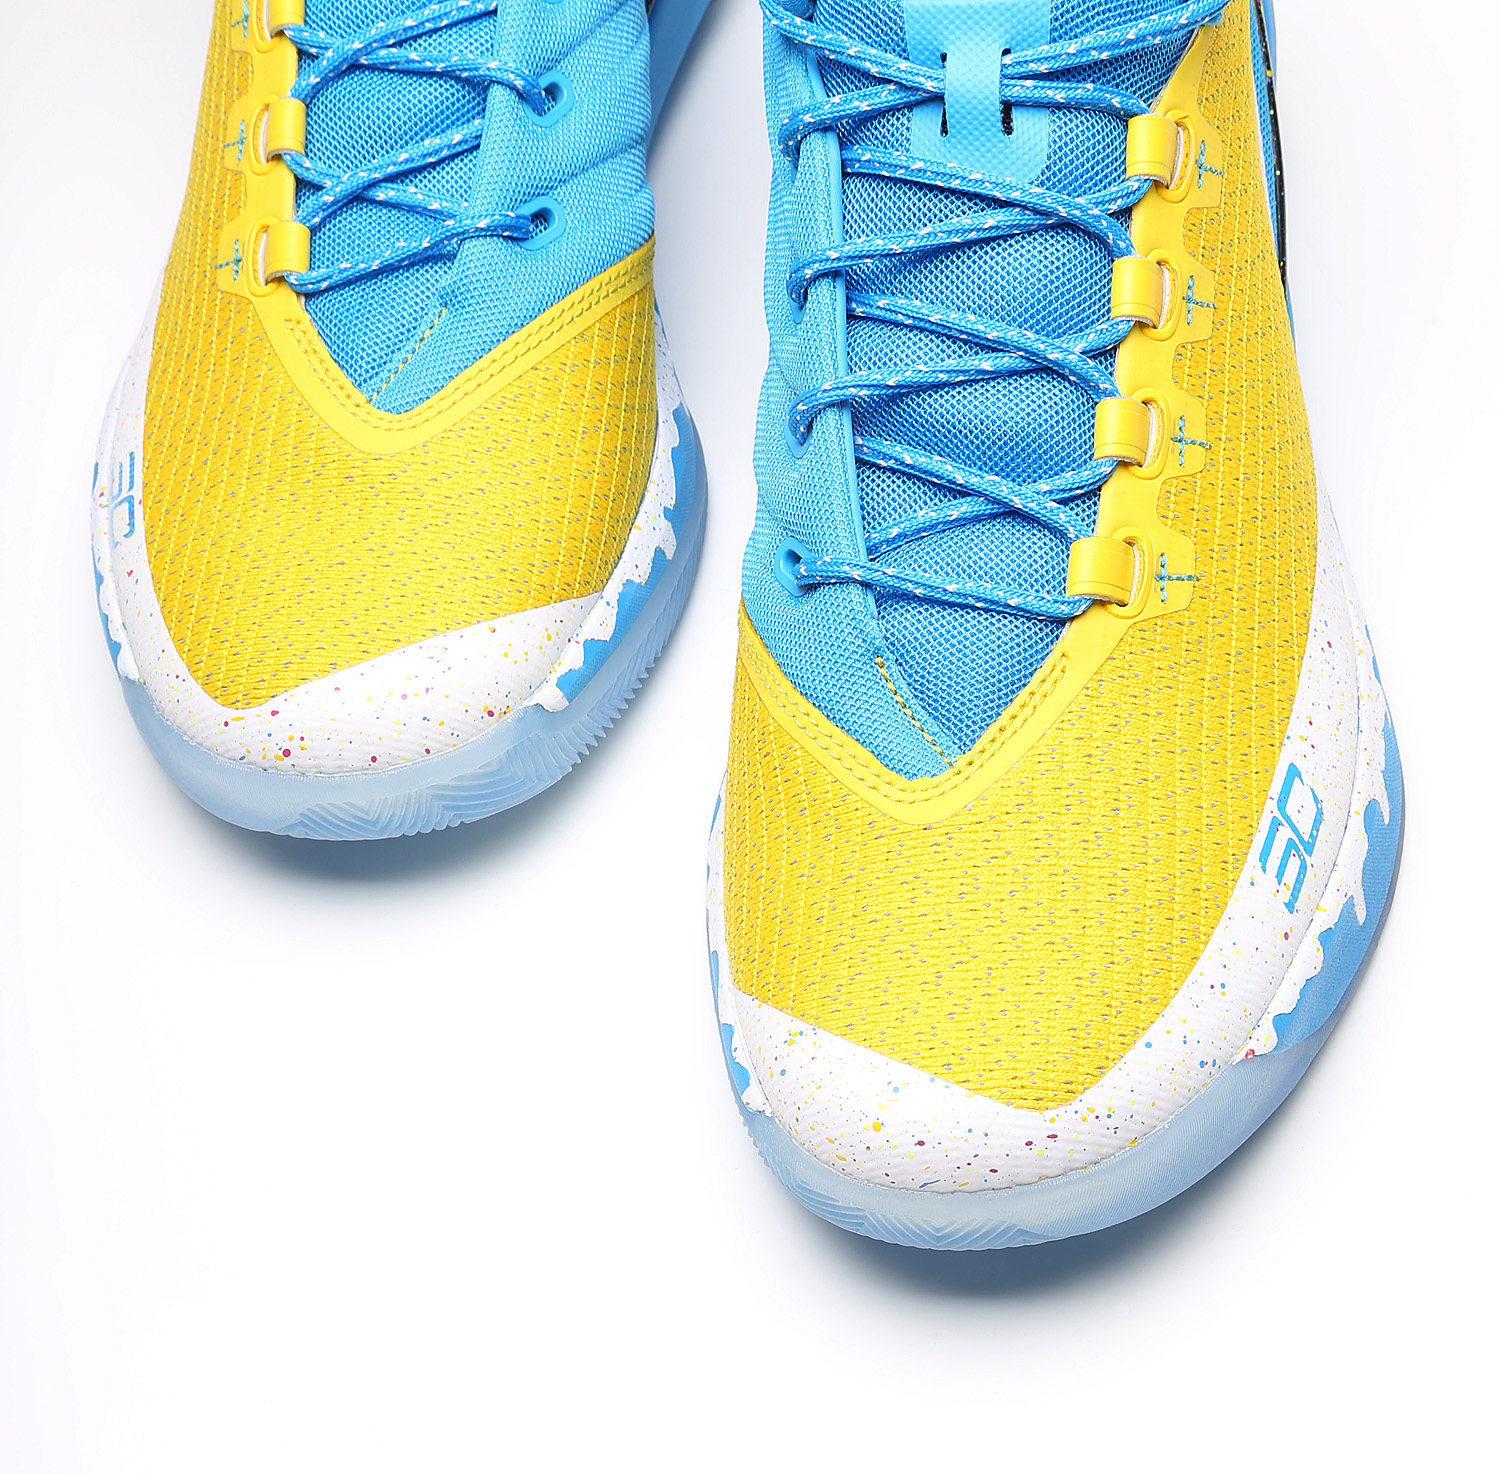 3e567ed12461 Under-Armour-Curry-3-Dubfetti-29th-Birthday-Shoe-2 - WearTesters